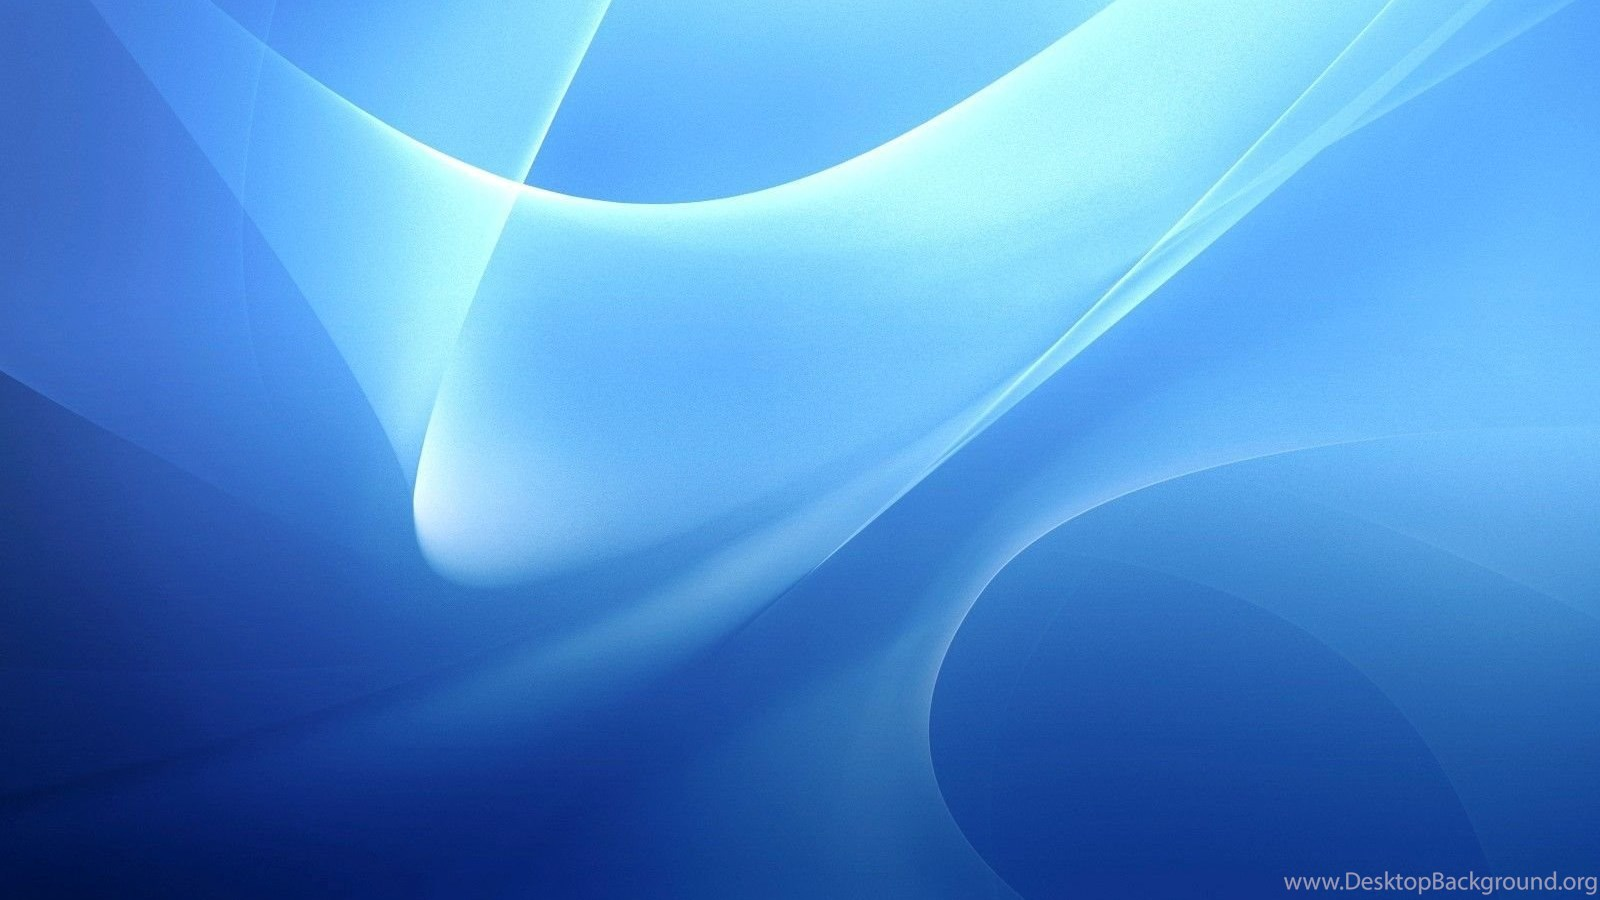 Hd Abstract Blue Background: Wallpapers Hd Abstract Blue Desktop Background